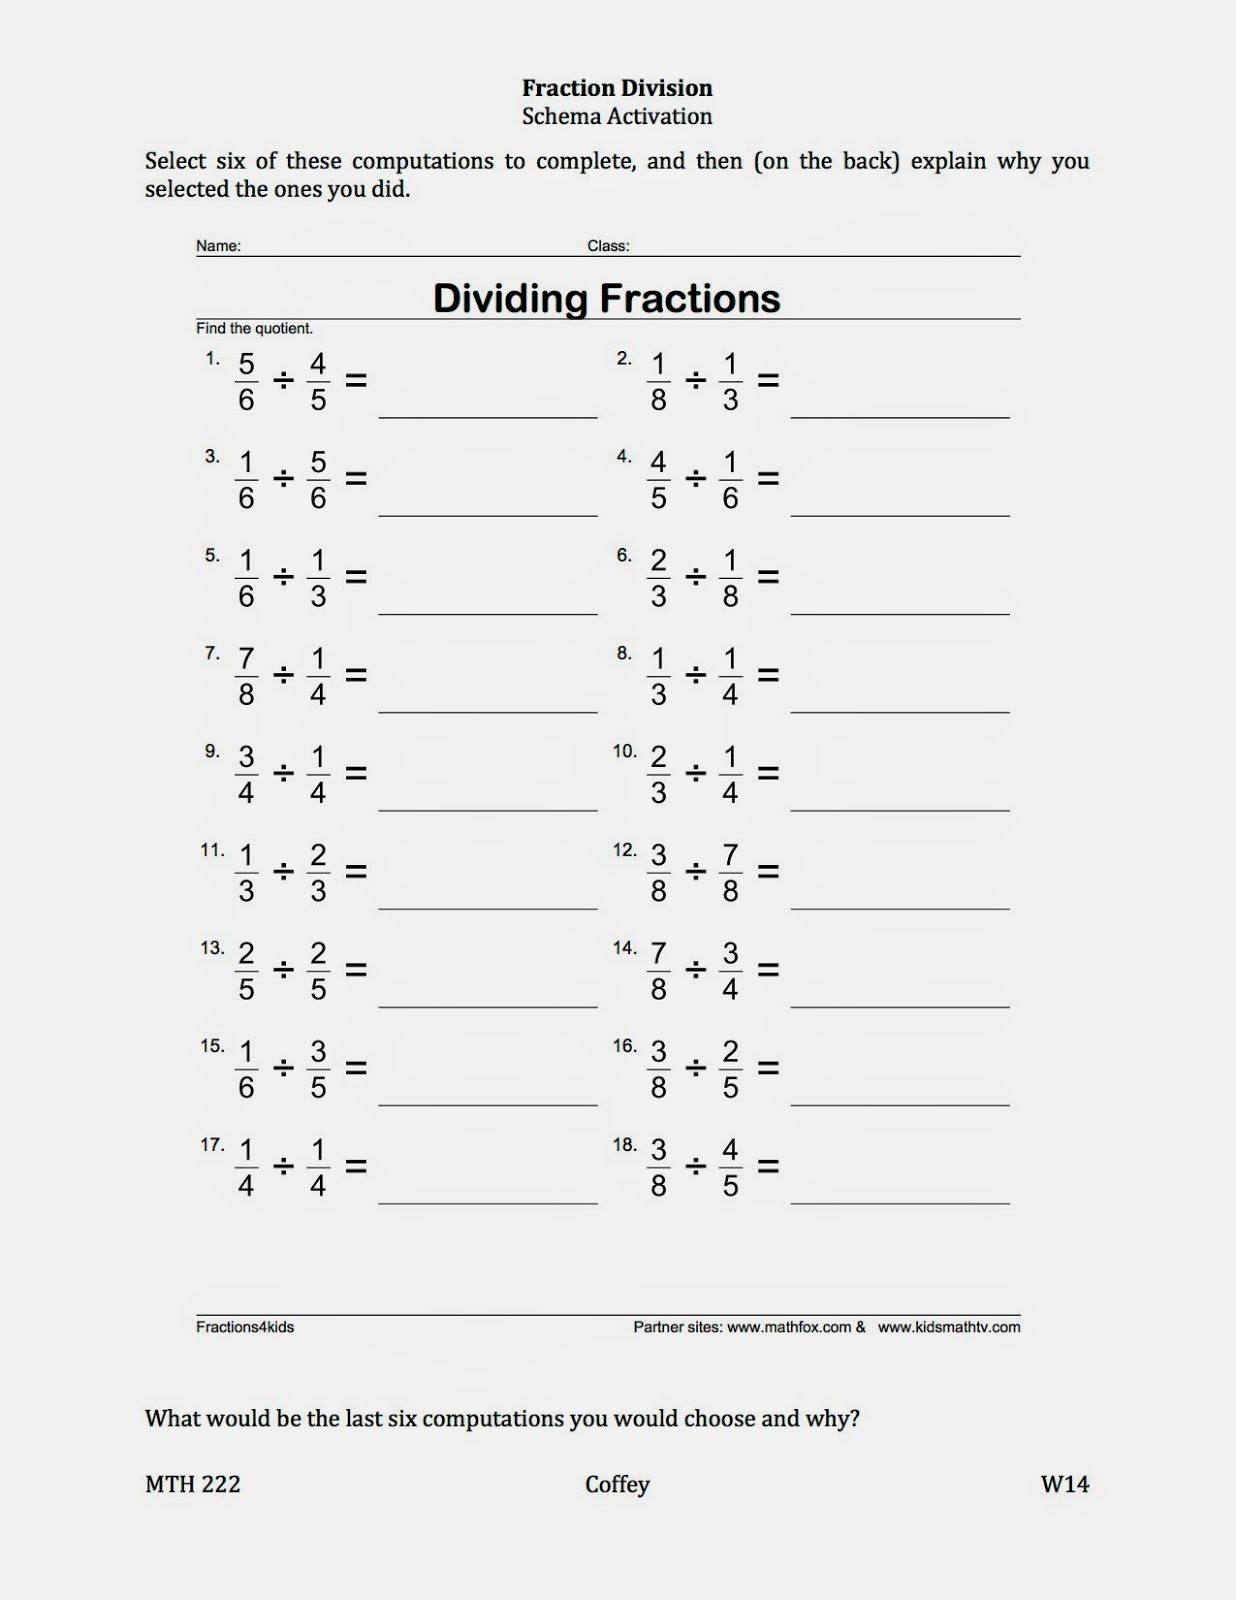 worksheet Make A Math Worksheet delta scape do you have a boring worksheet that want to make there was nothing special about the first it could be on just any topic but extra instructions two sent